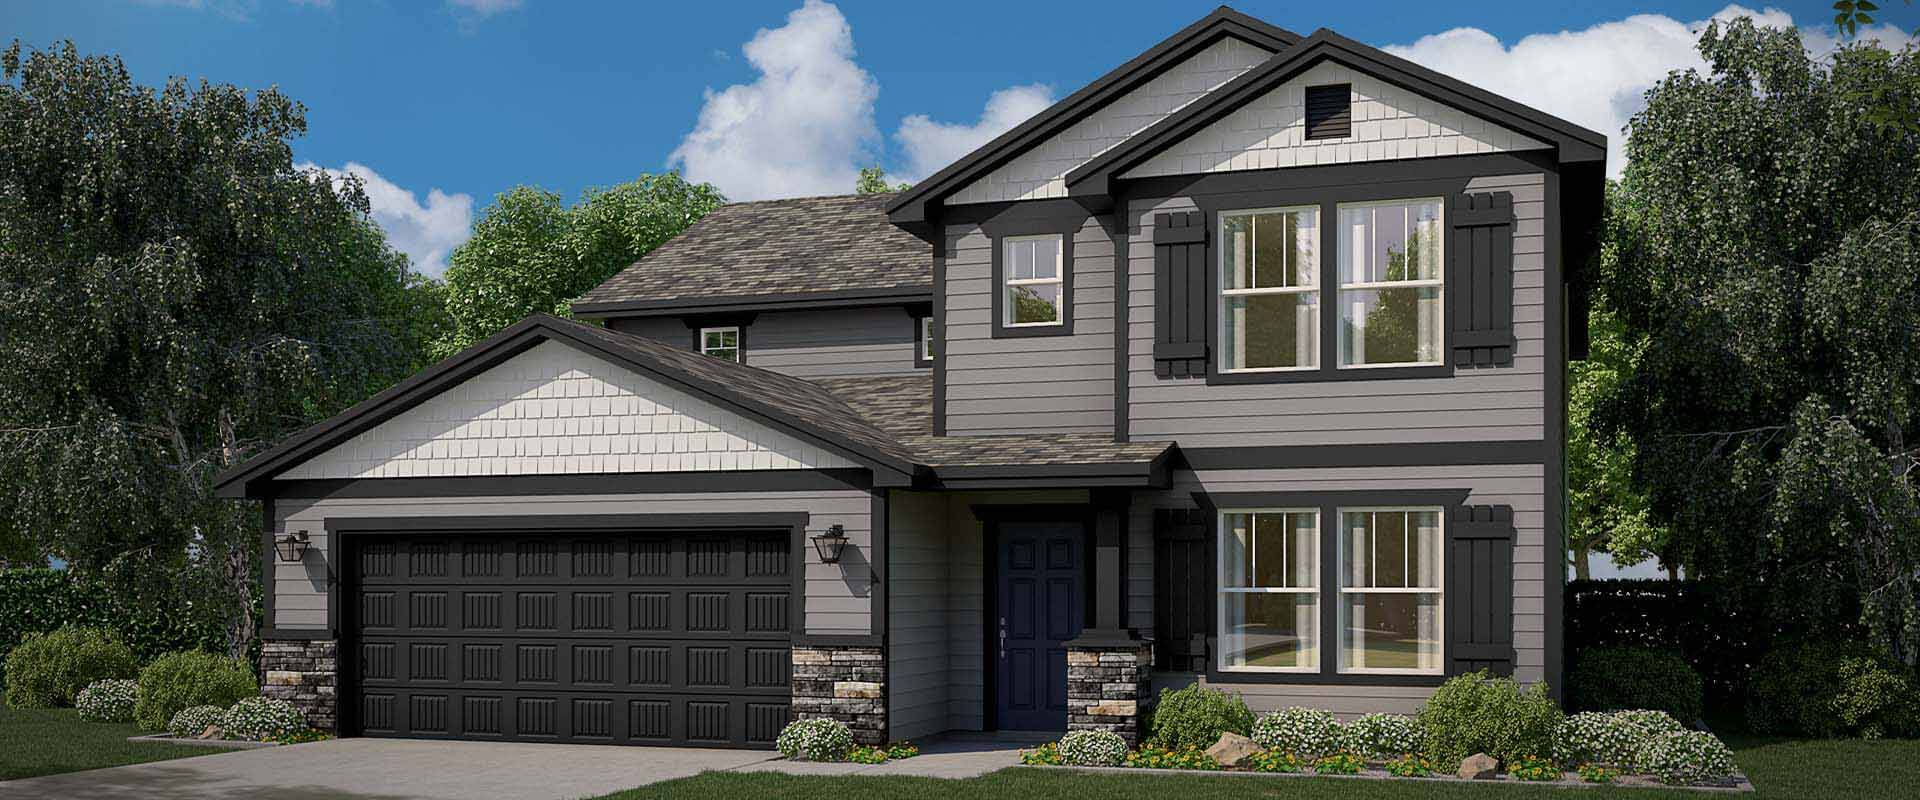 Cedar-Craftsman-new-homes-boise-idaho-hubble-homes.jpg